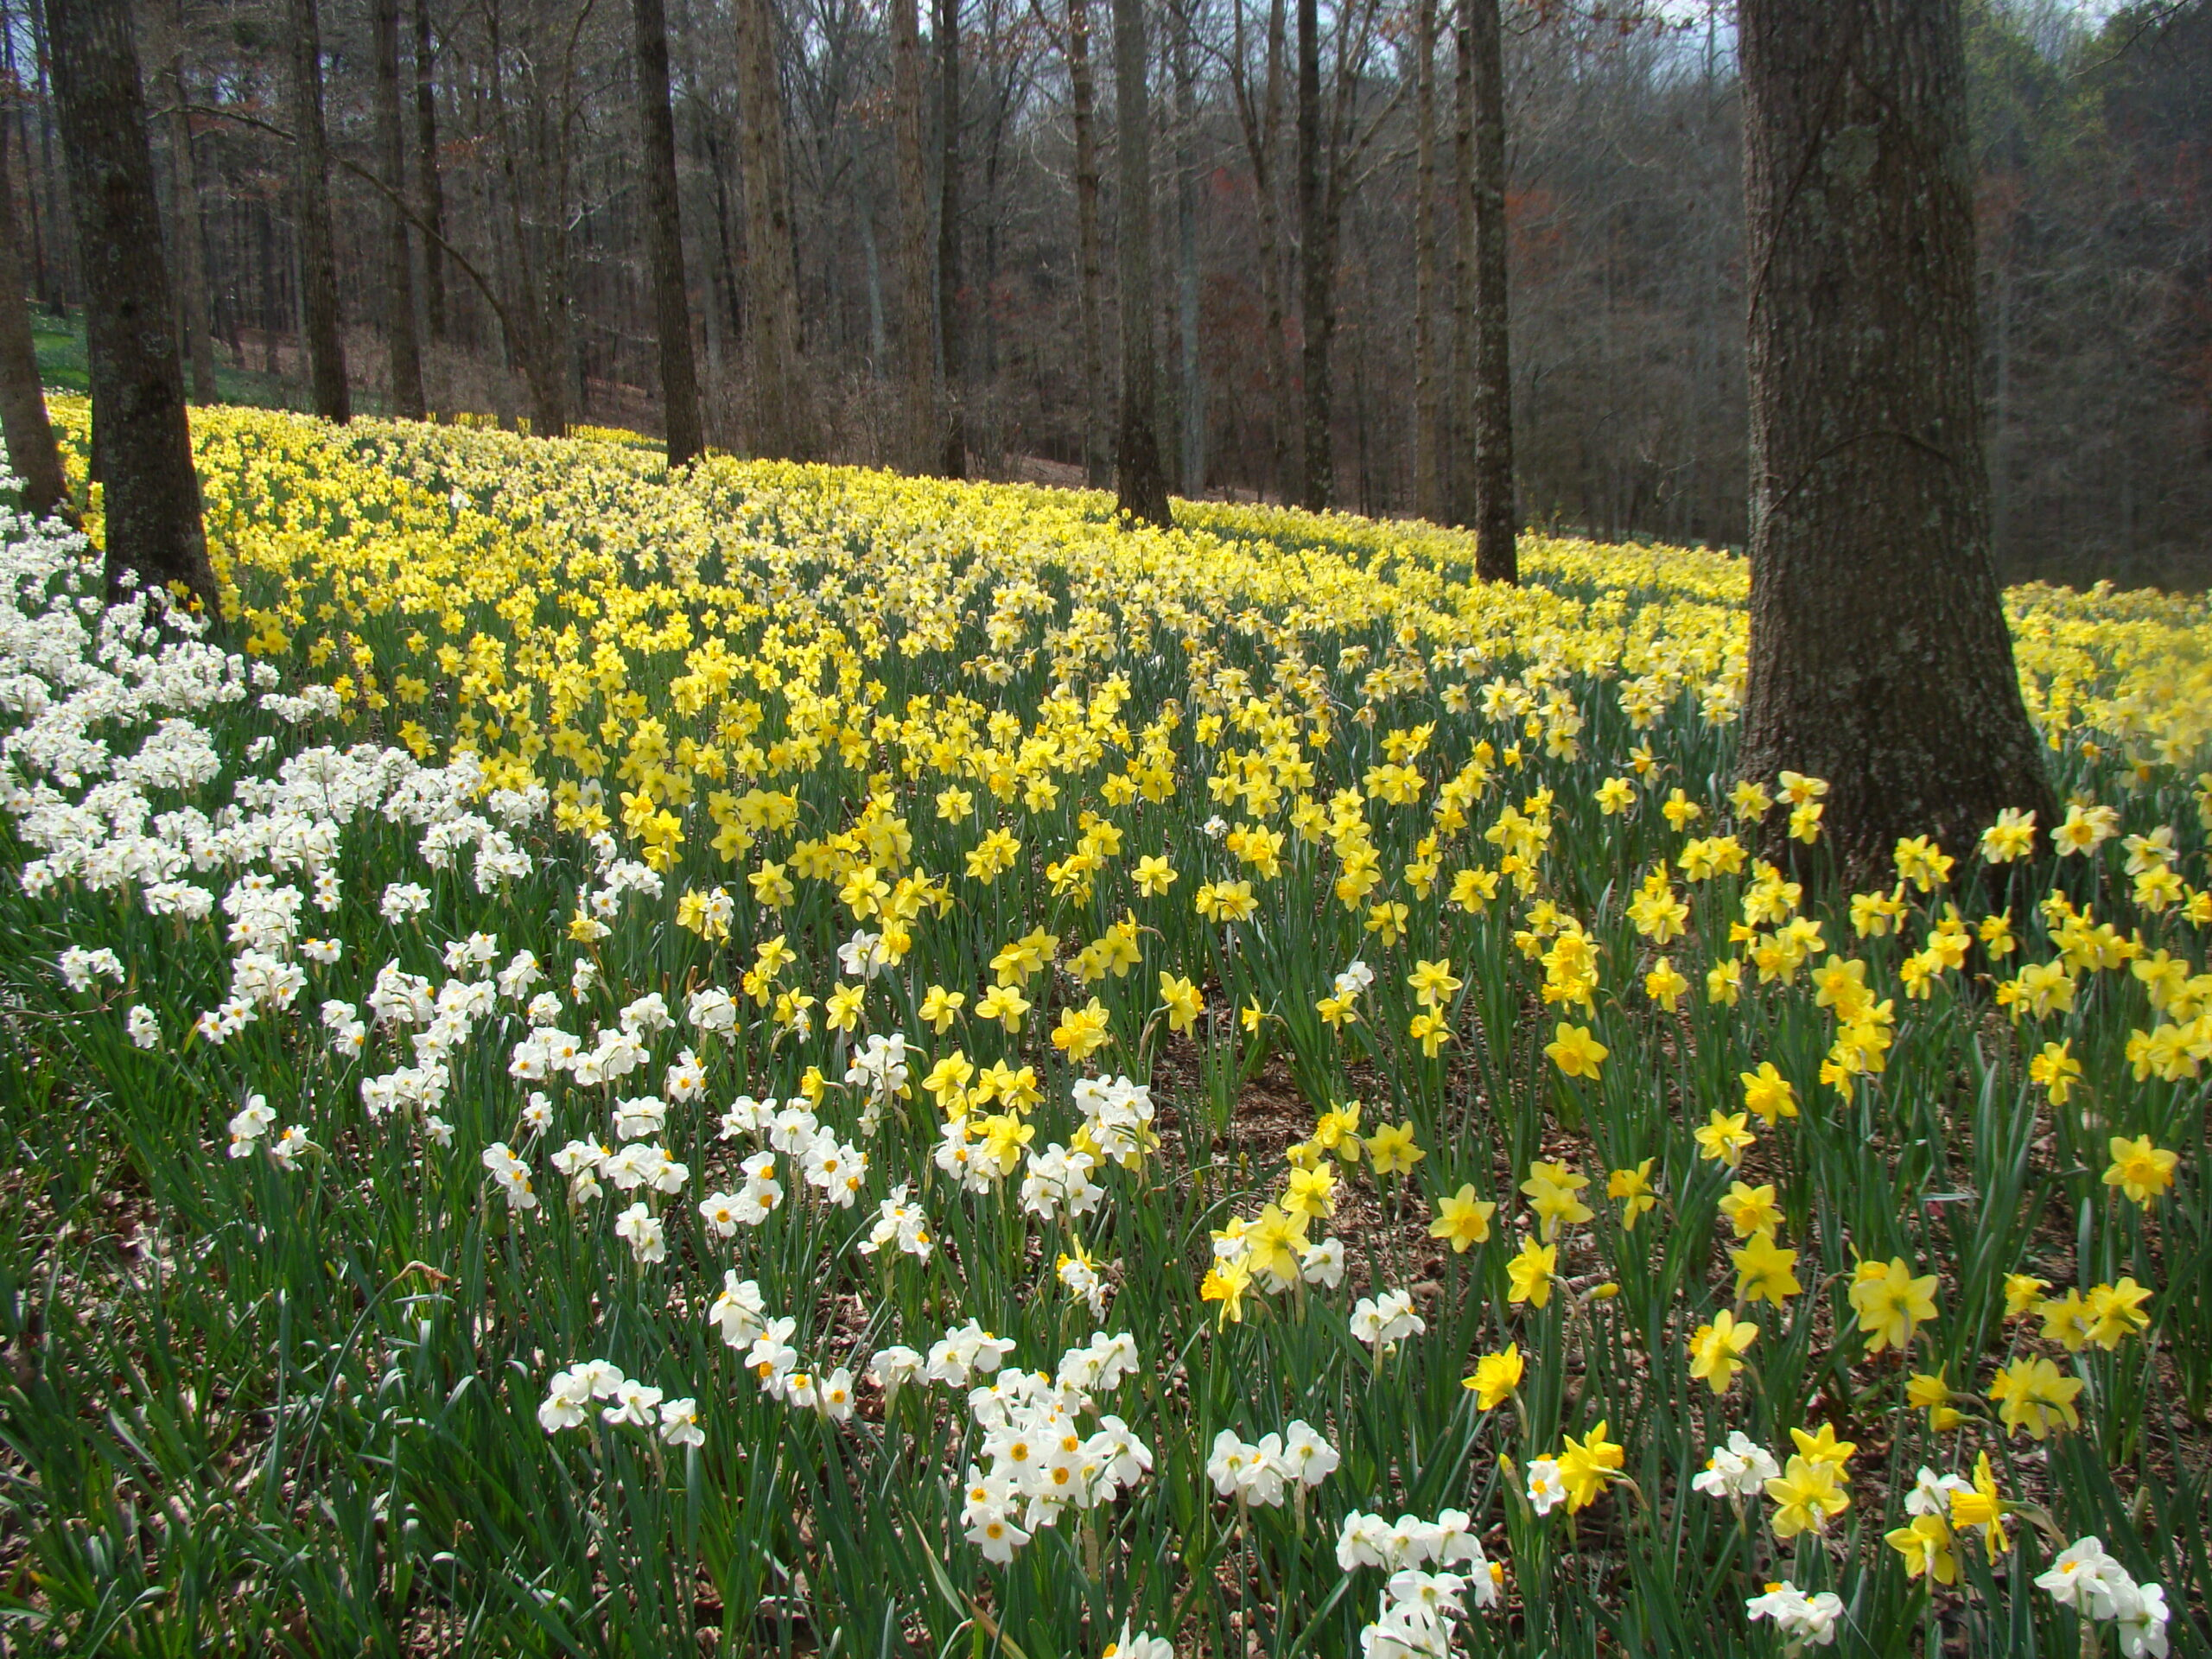 Daffodils mark the arrival of spring.